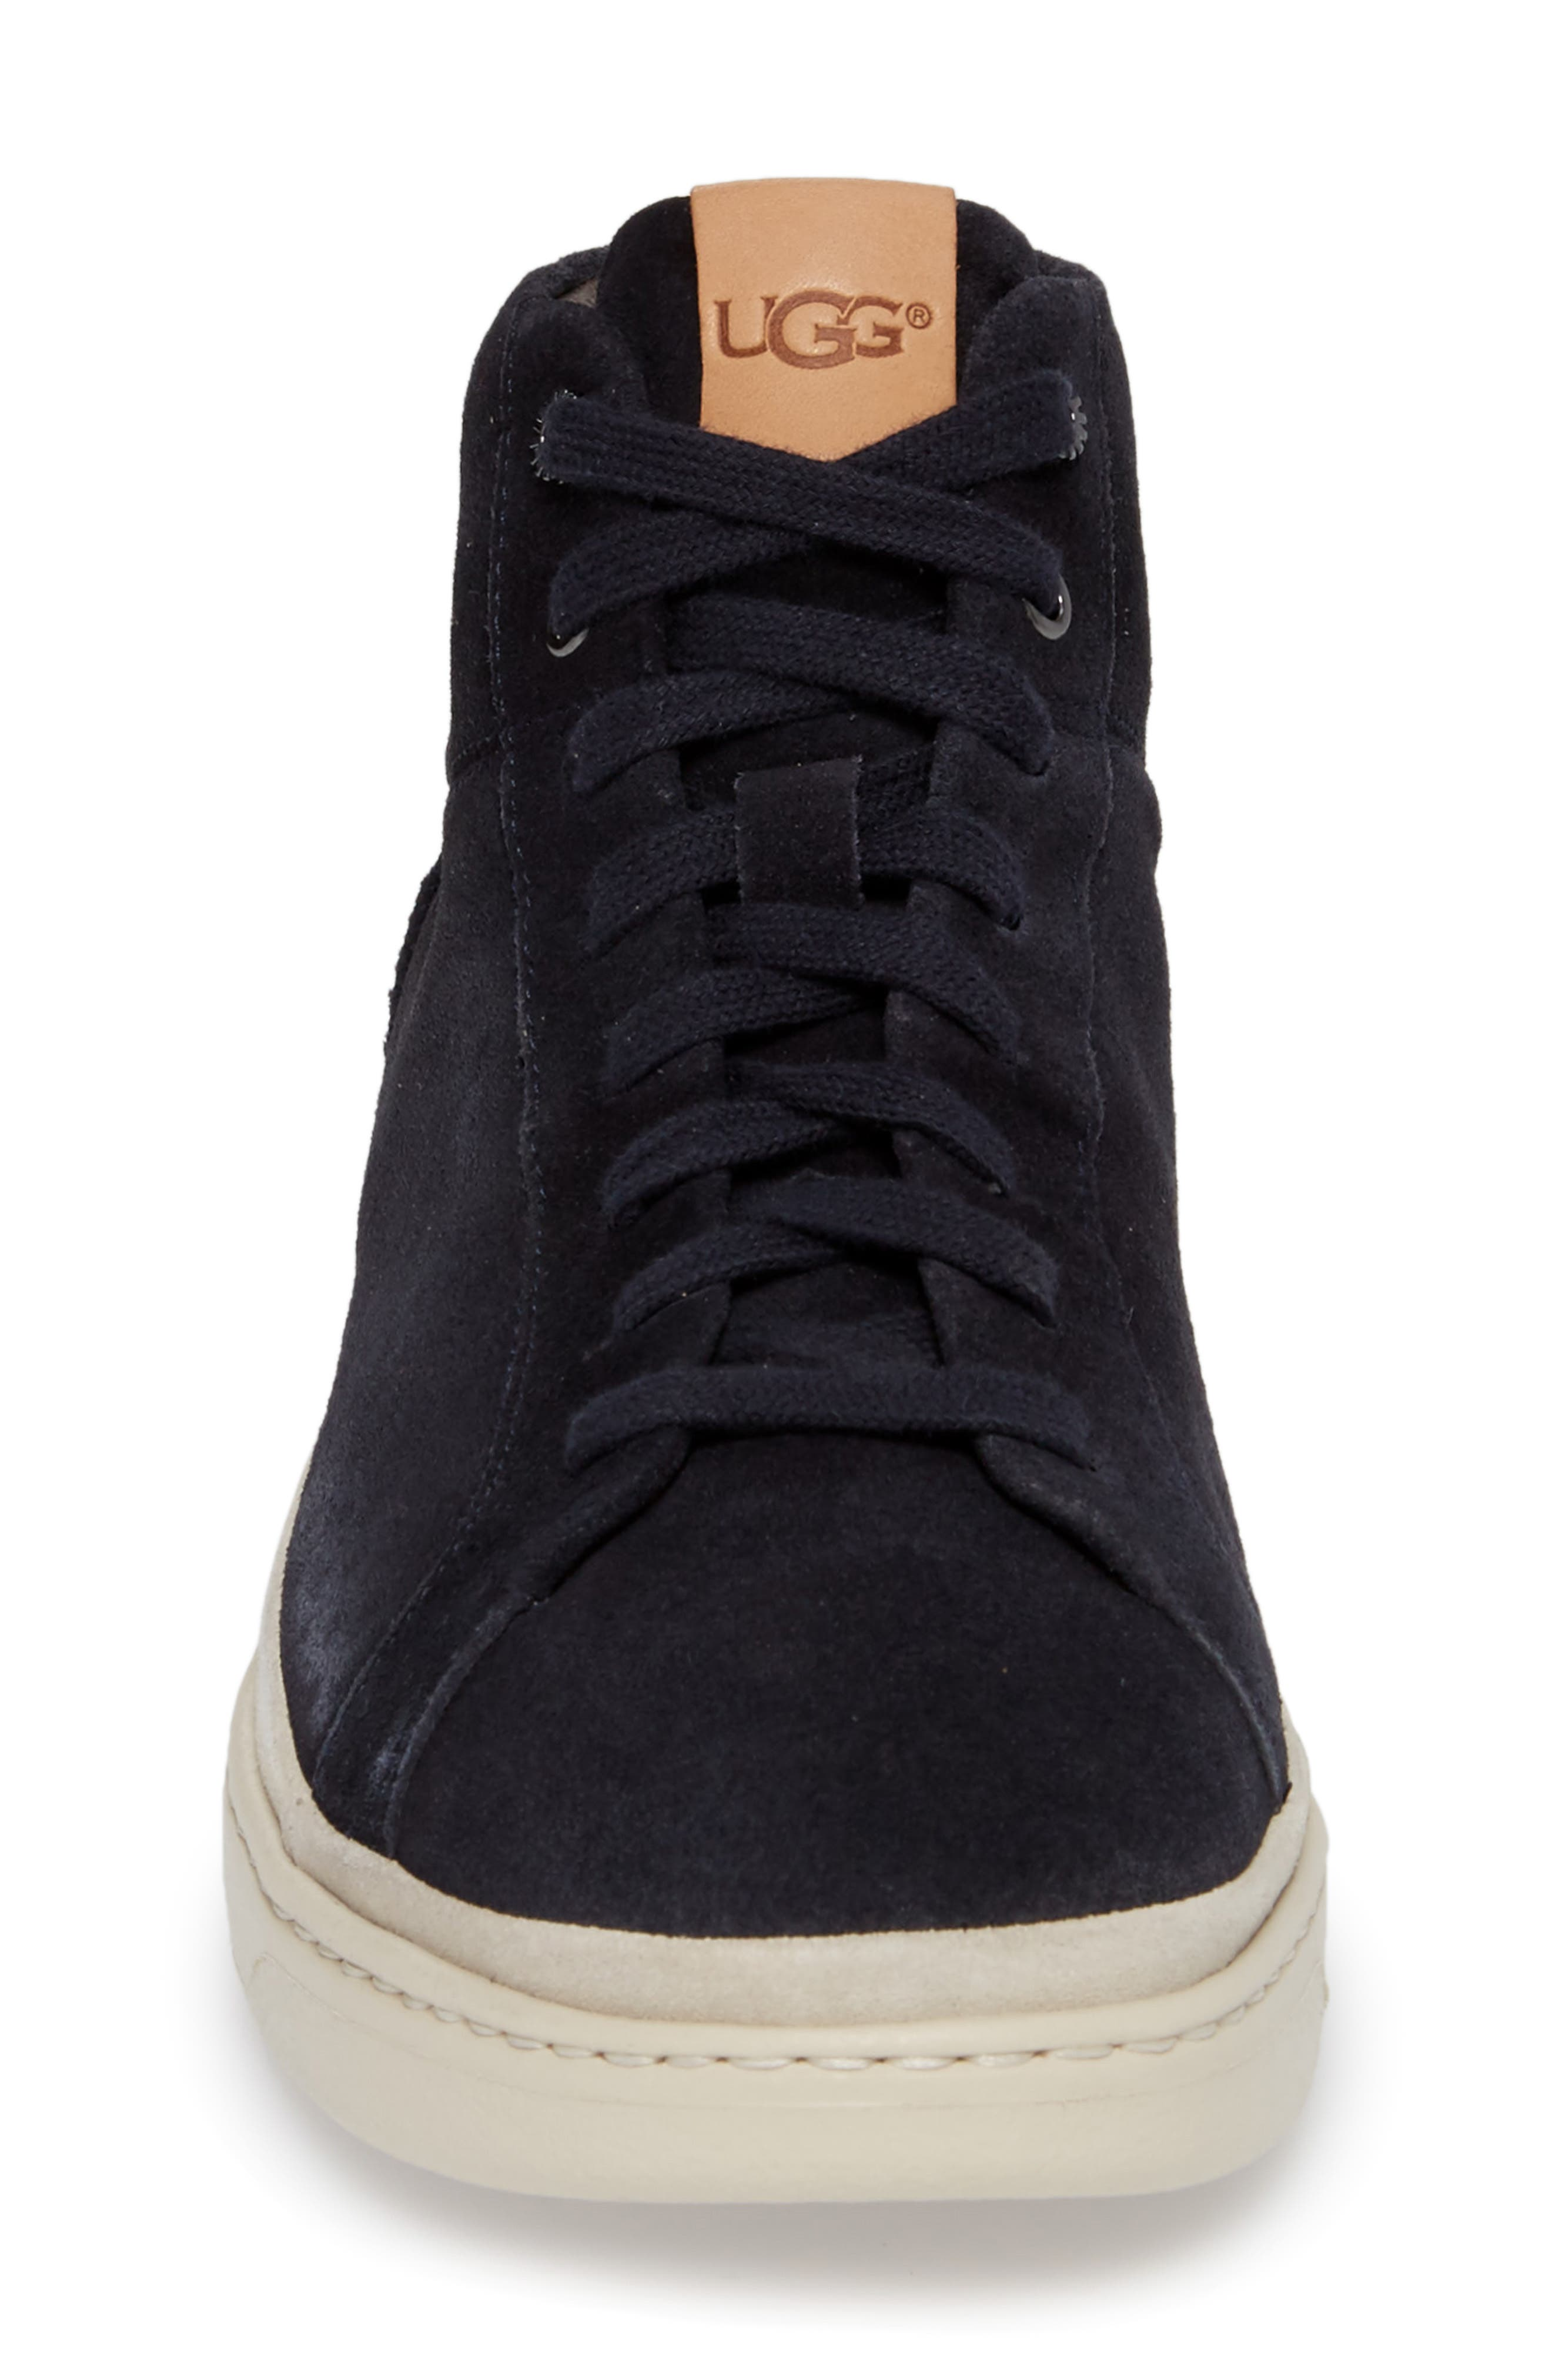 Cali High Top Sneaker,                             Alternate thumbnail 4, color,                             NAVY LEATHER